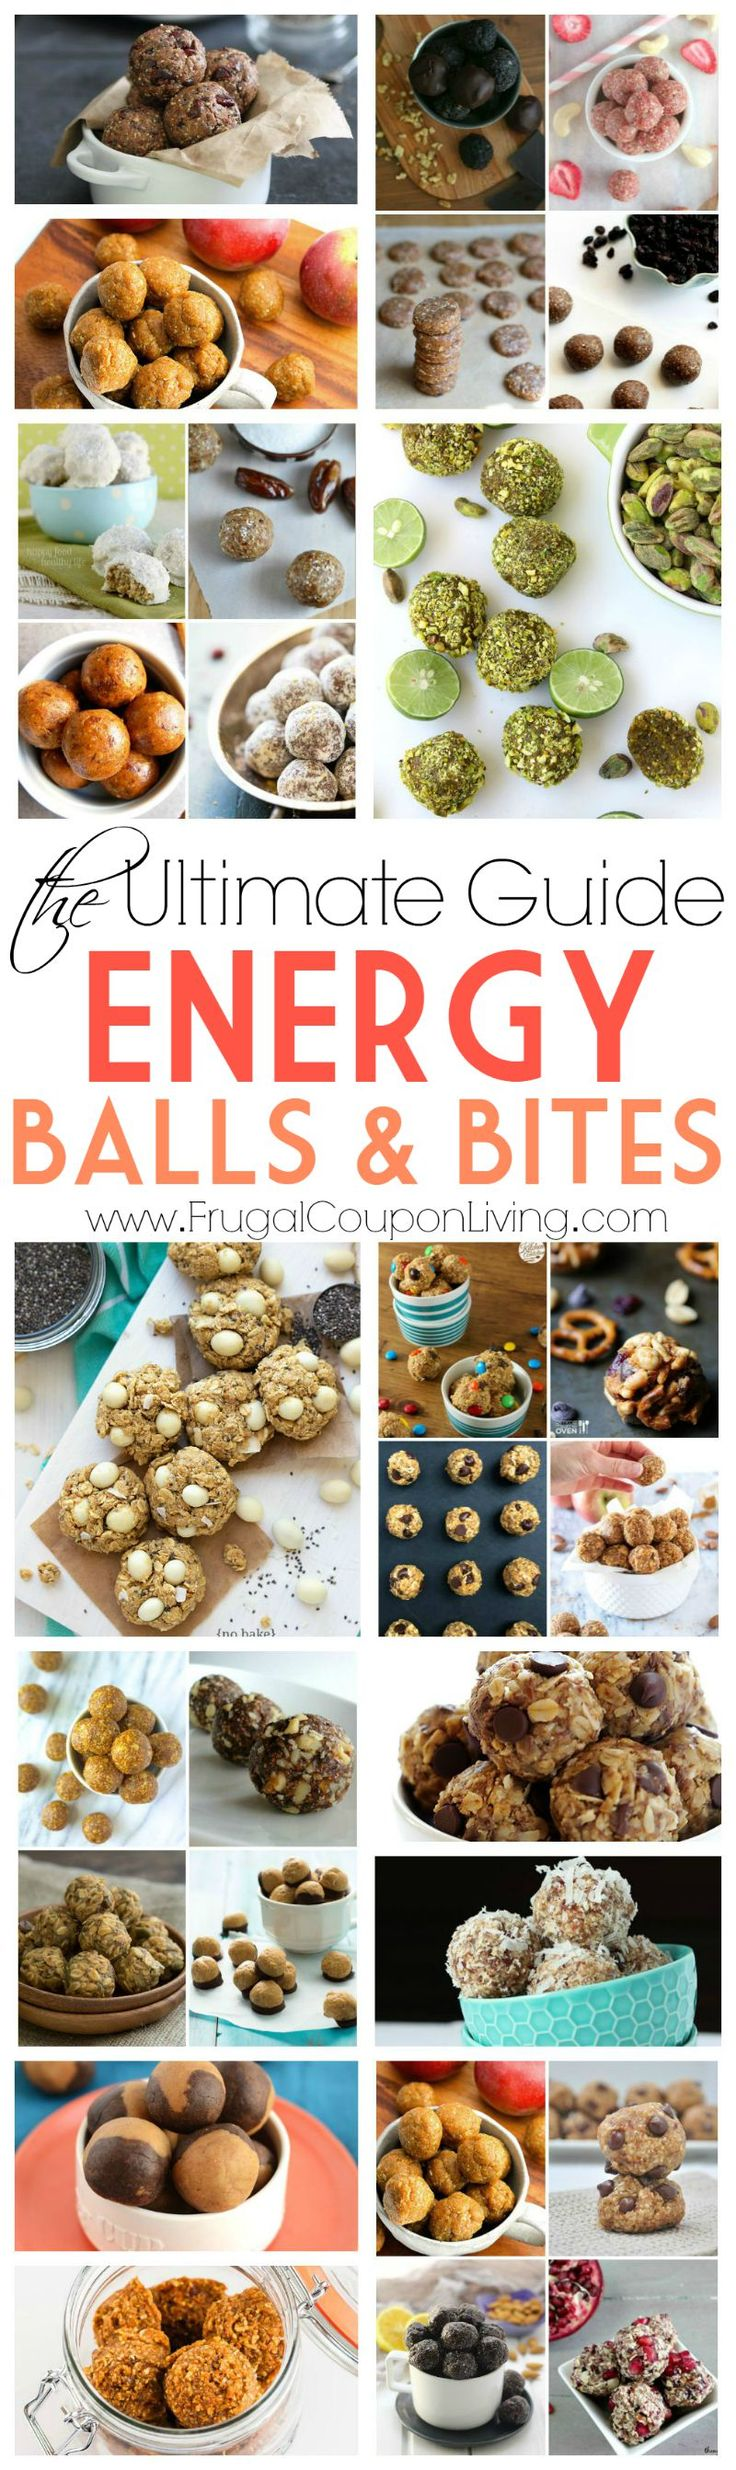 Full list of amazing Energy Ball reicpes on Fugal COupon Living - gluten free energy balls, healthy energy balls, dessert energy balls.